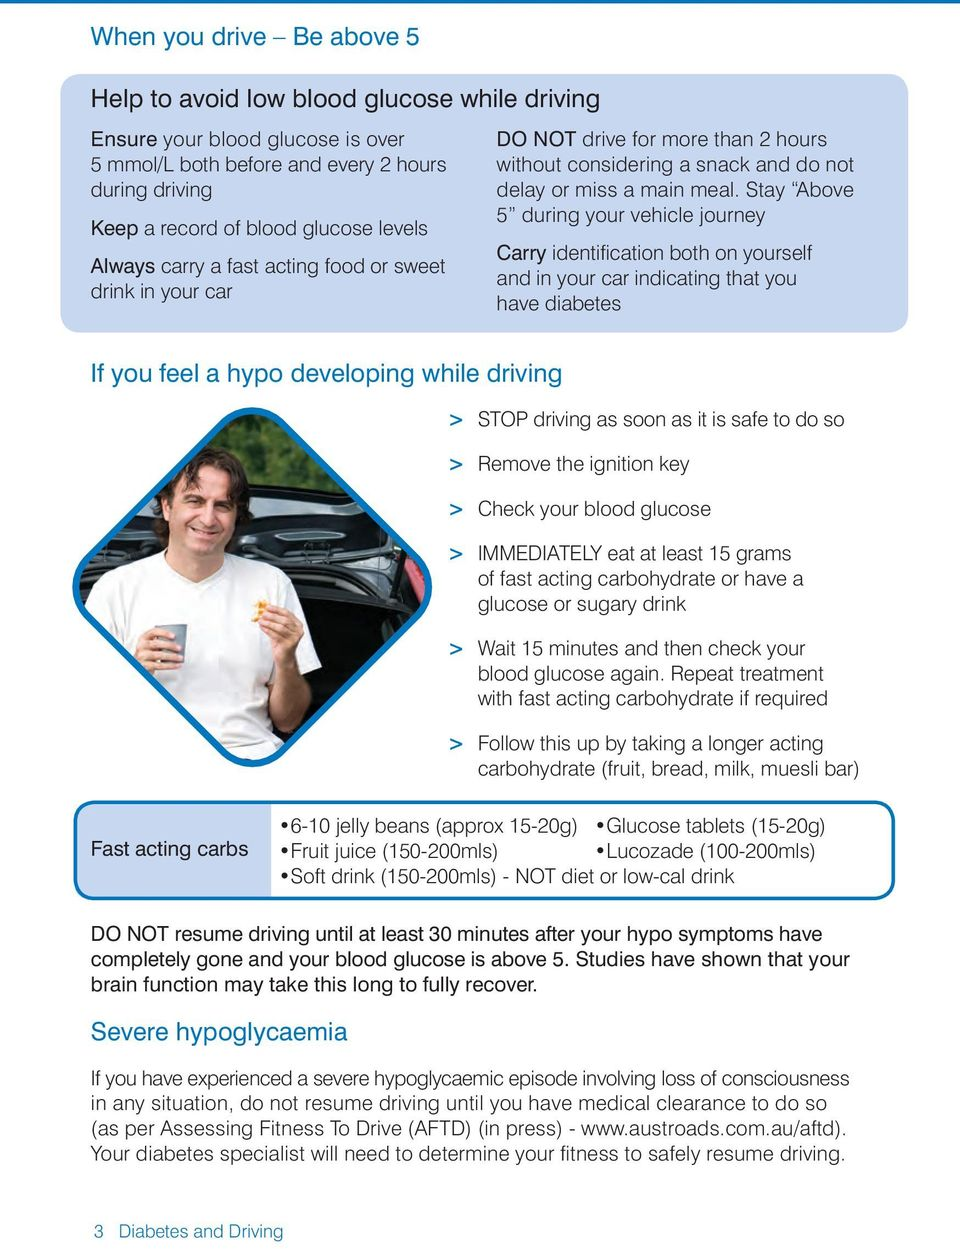 Stay Above 5 during your vehicle journey Carry identification both on yourself and in your car indicating that you have diabetes If you feel a hypo developing while driving > STOP driving as soon as